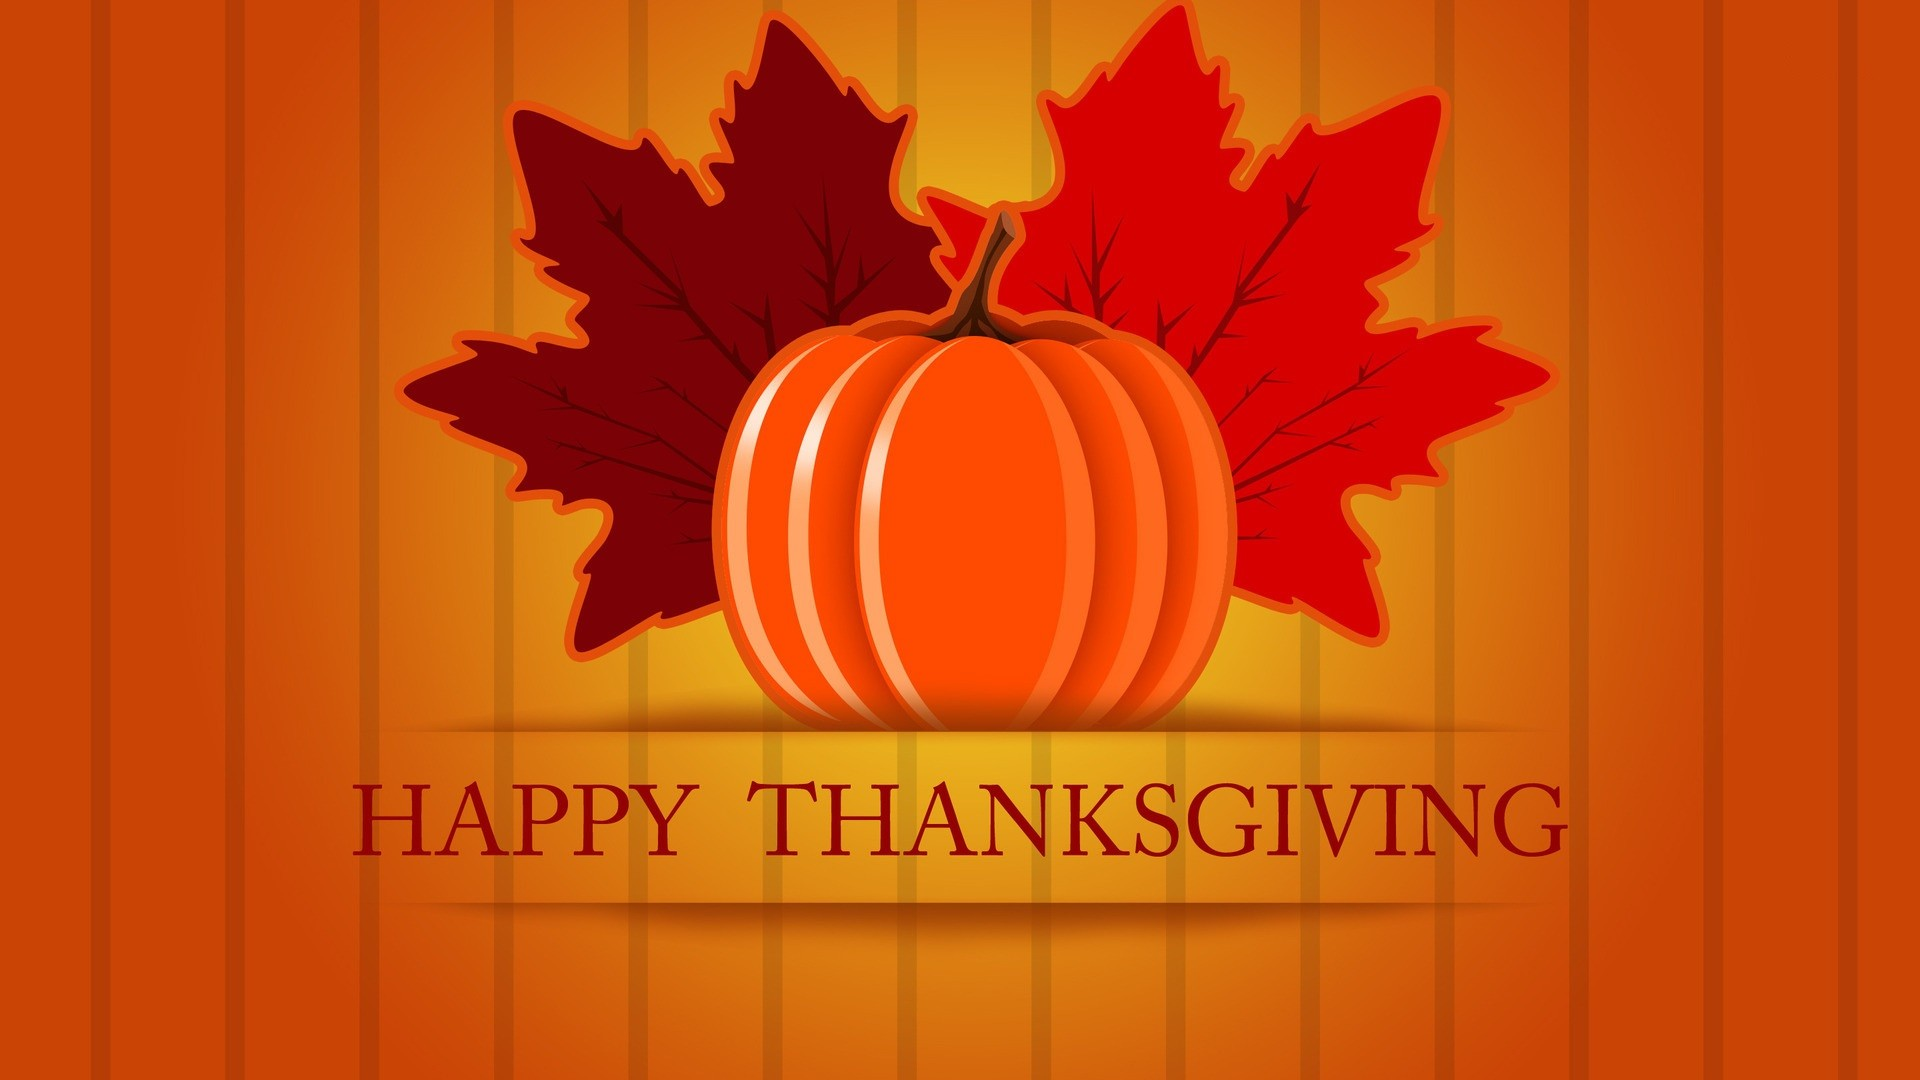 Thanksgiving HD Wallpapers : Get Free top quality Thanksgiving HD Wallpapers  for your desktop PC background